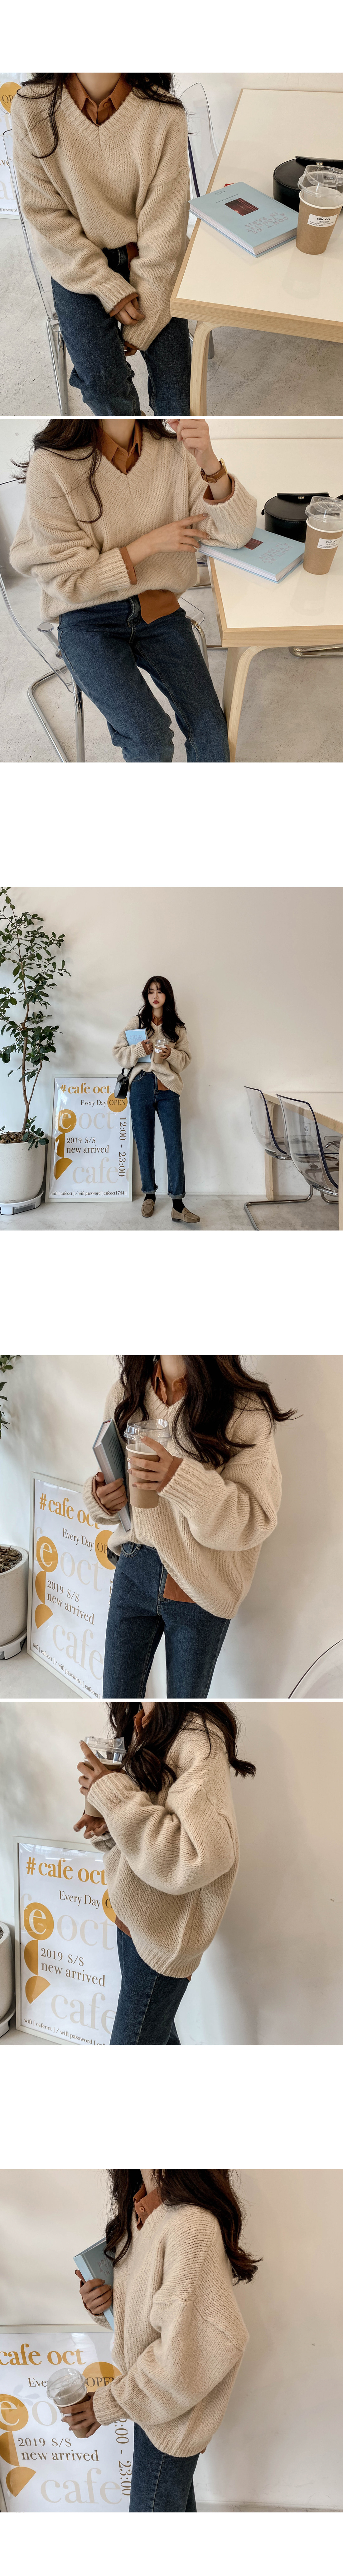 Woolly loose fit v neck knit